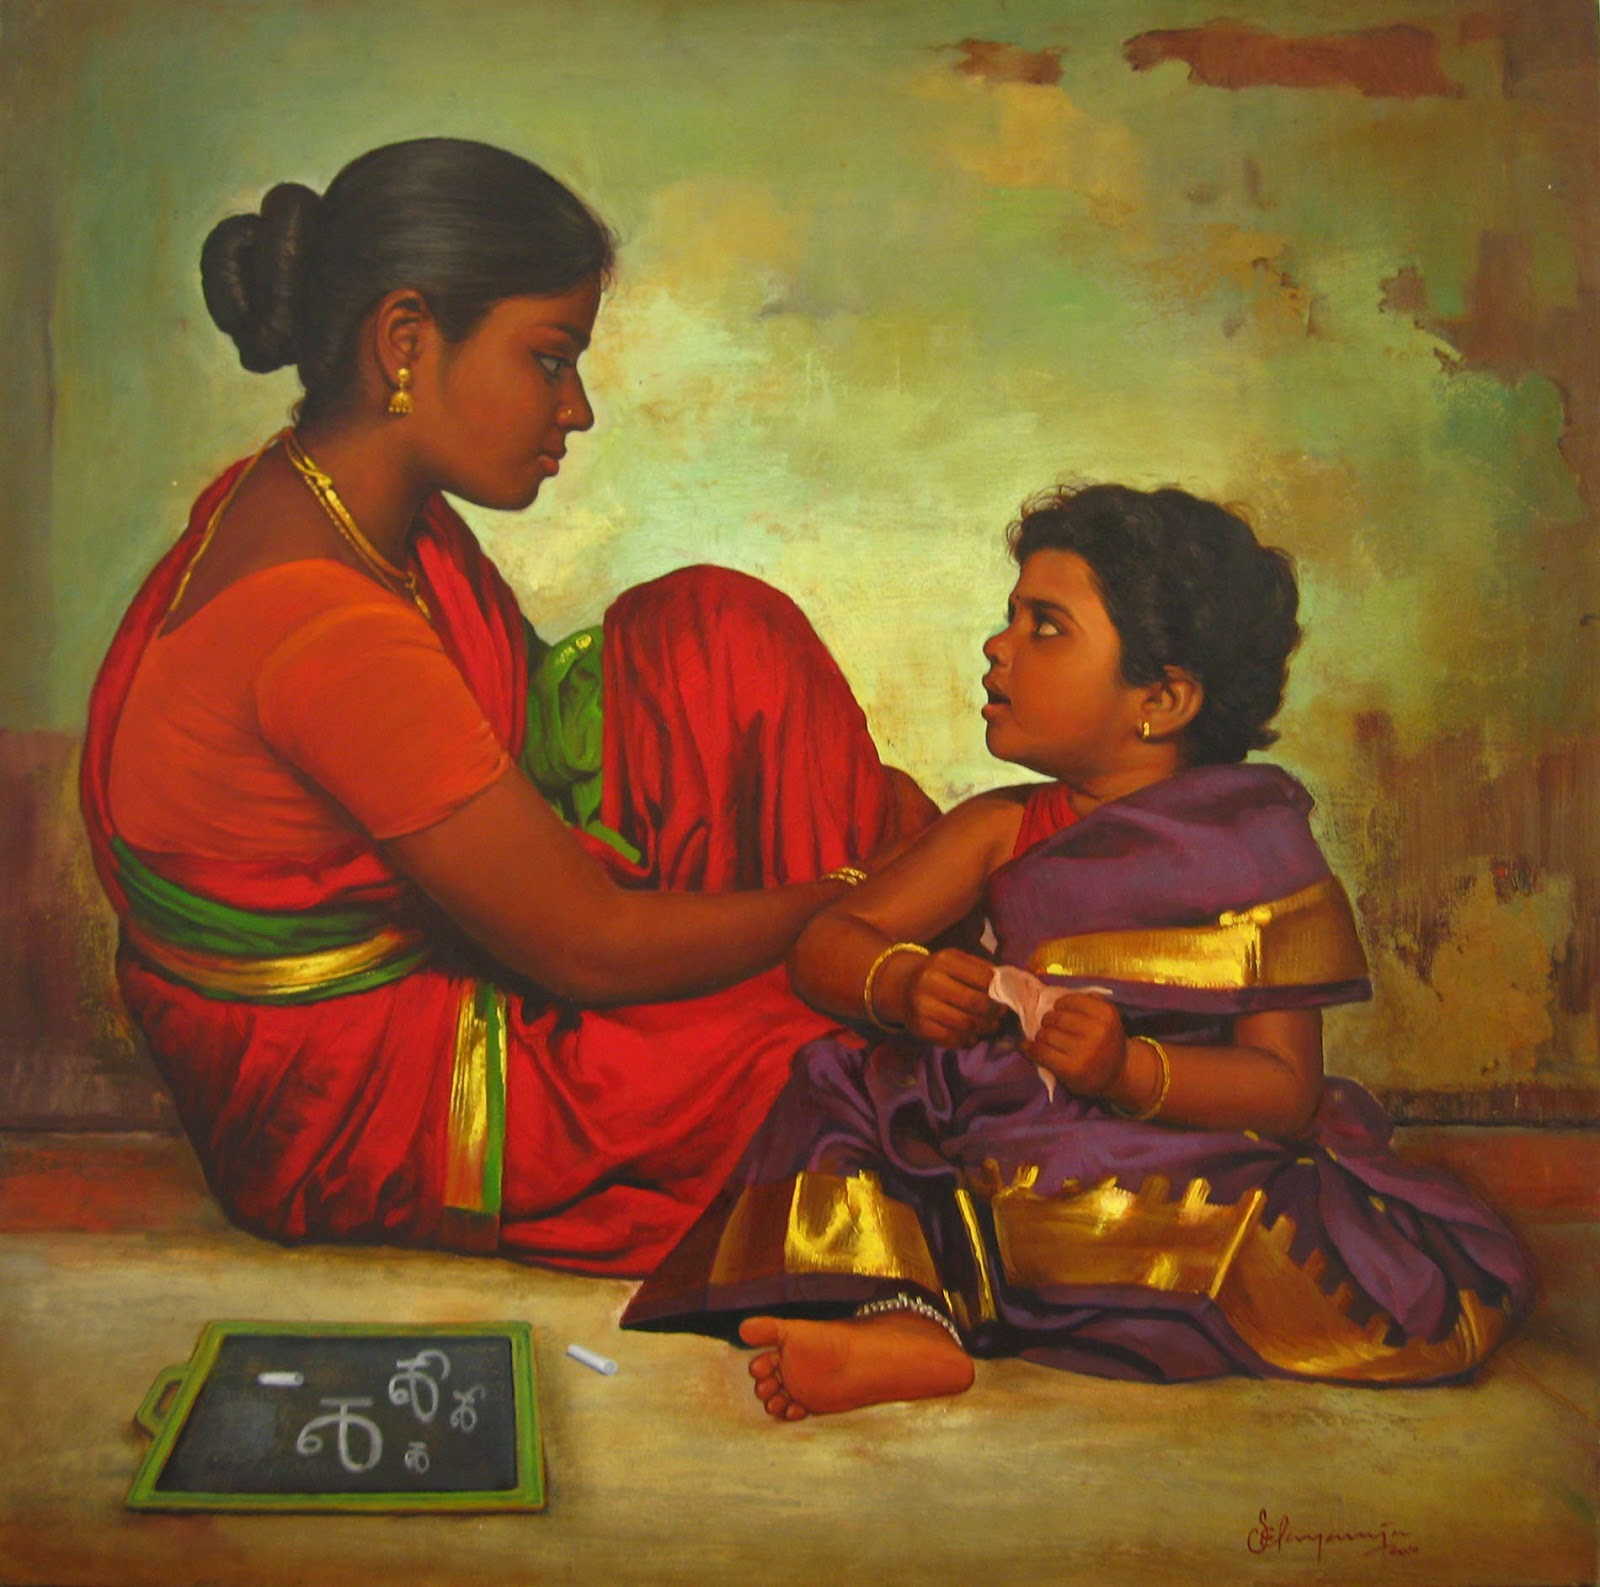 acrylic painting artwork mother child tamilnadu